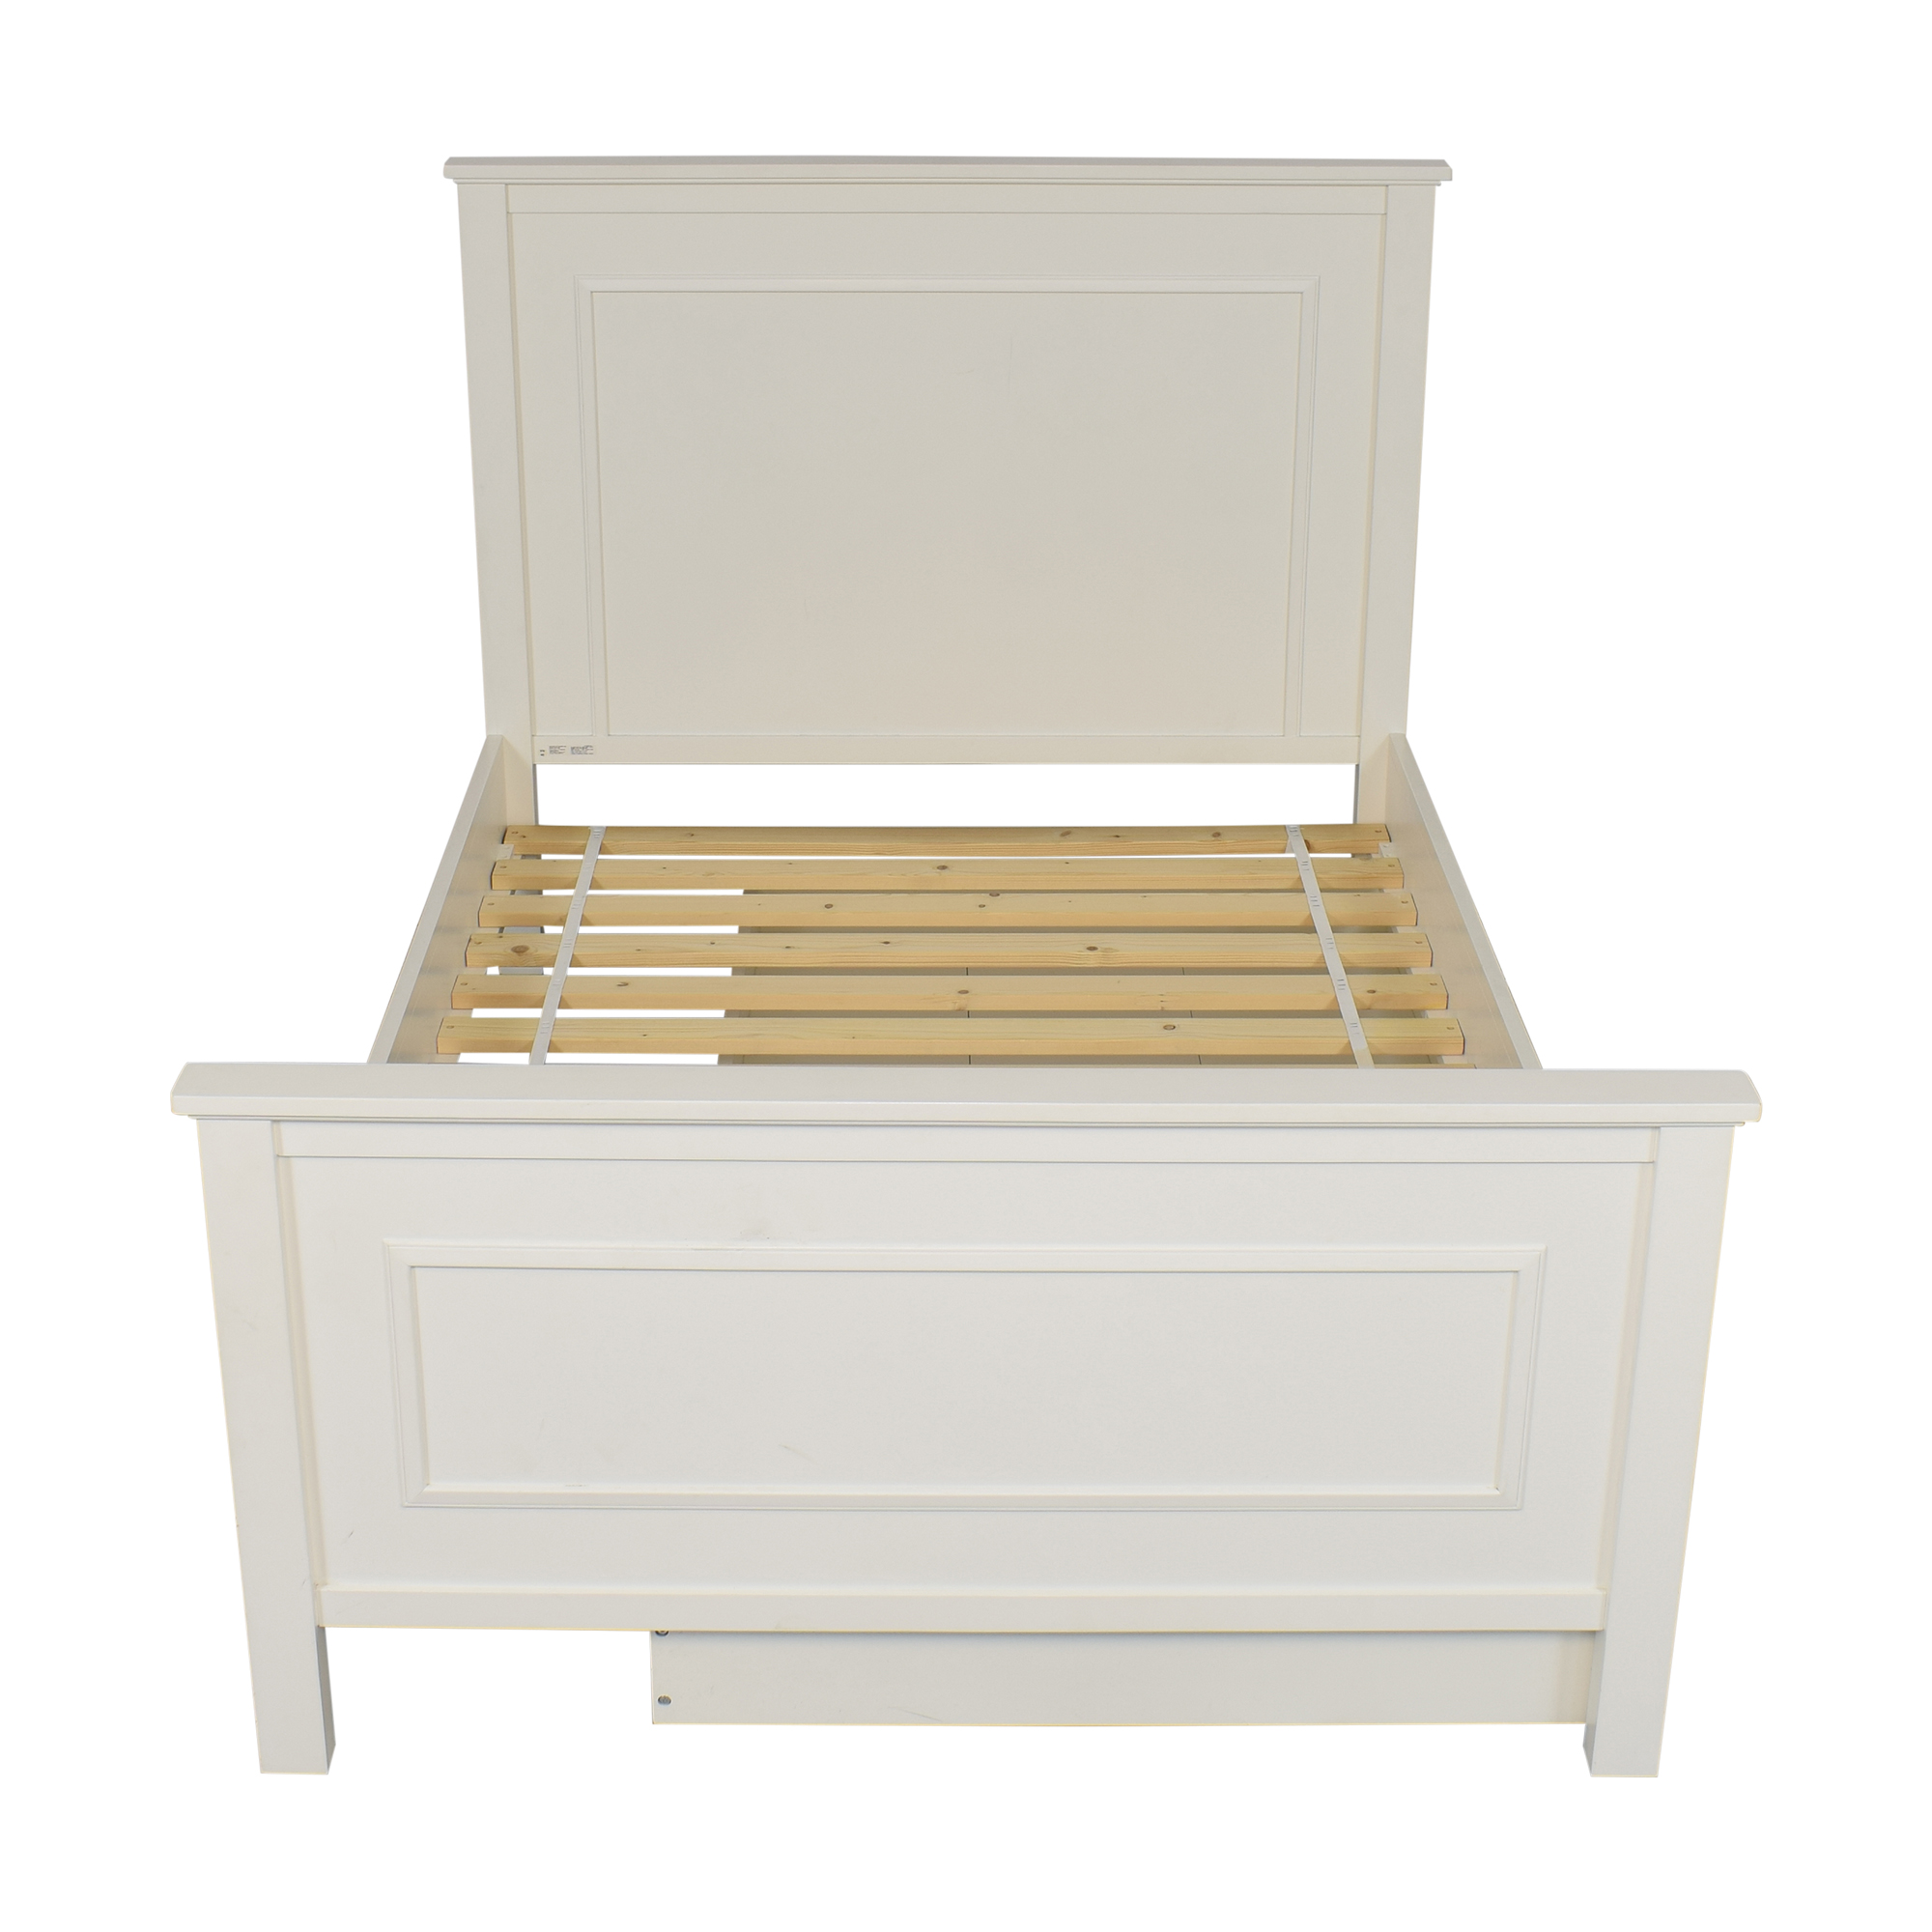 Pottery Barn Kids Pottery Barn Kids Fillmore Bed with Trundle on sale